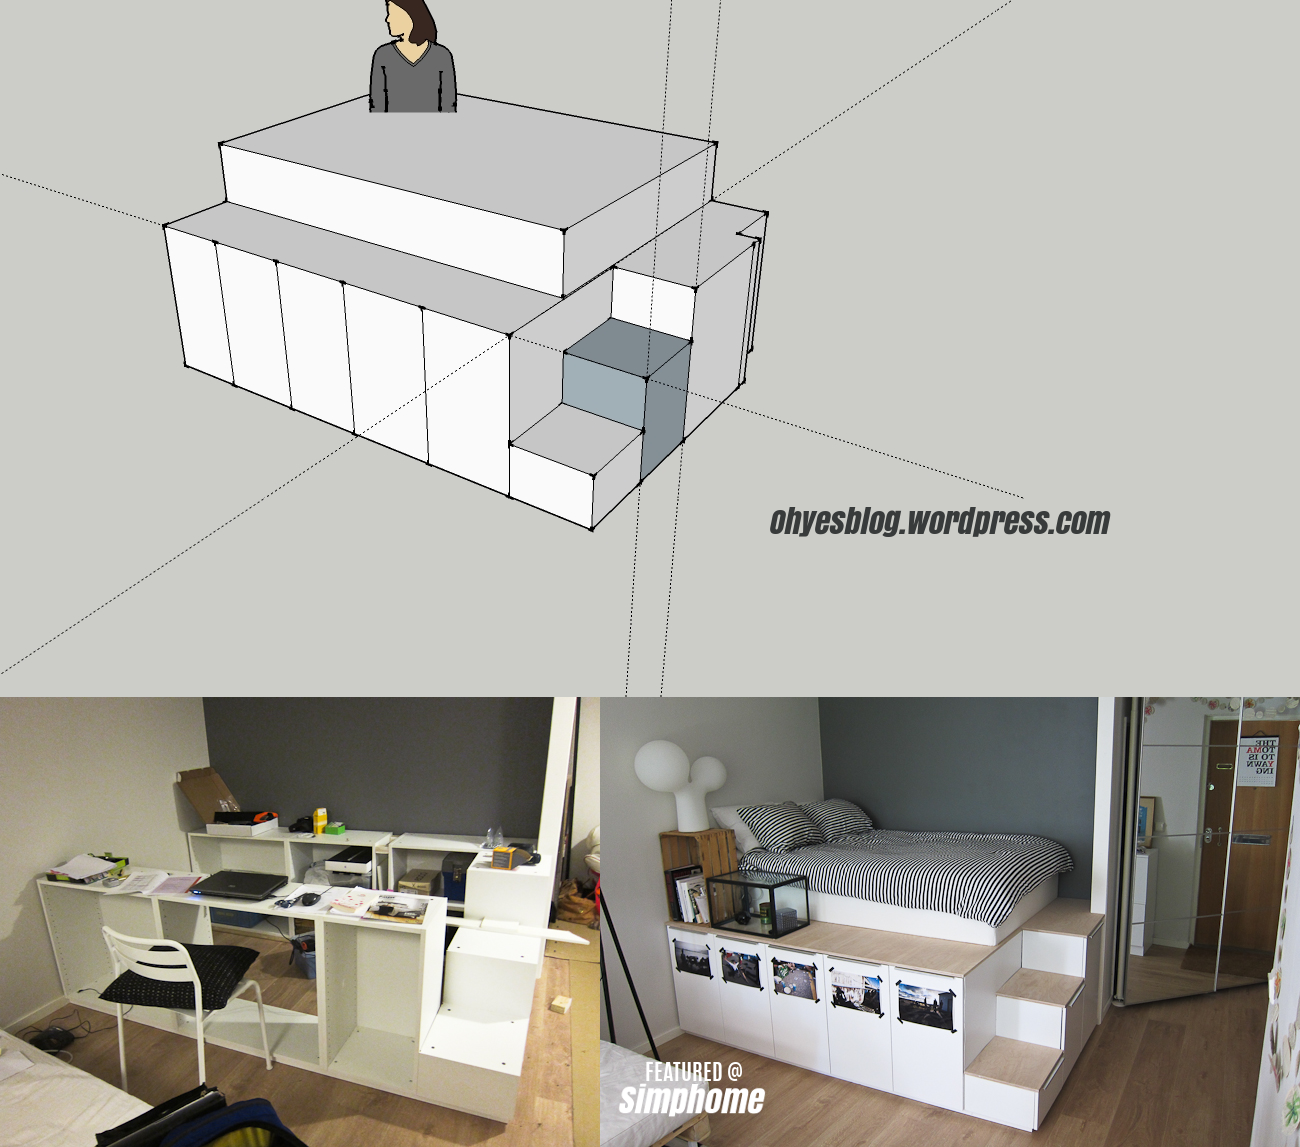 38 Build a platform bed with under bed storage using IKEA cabinets via simphome